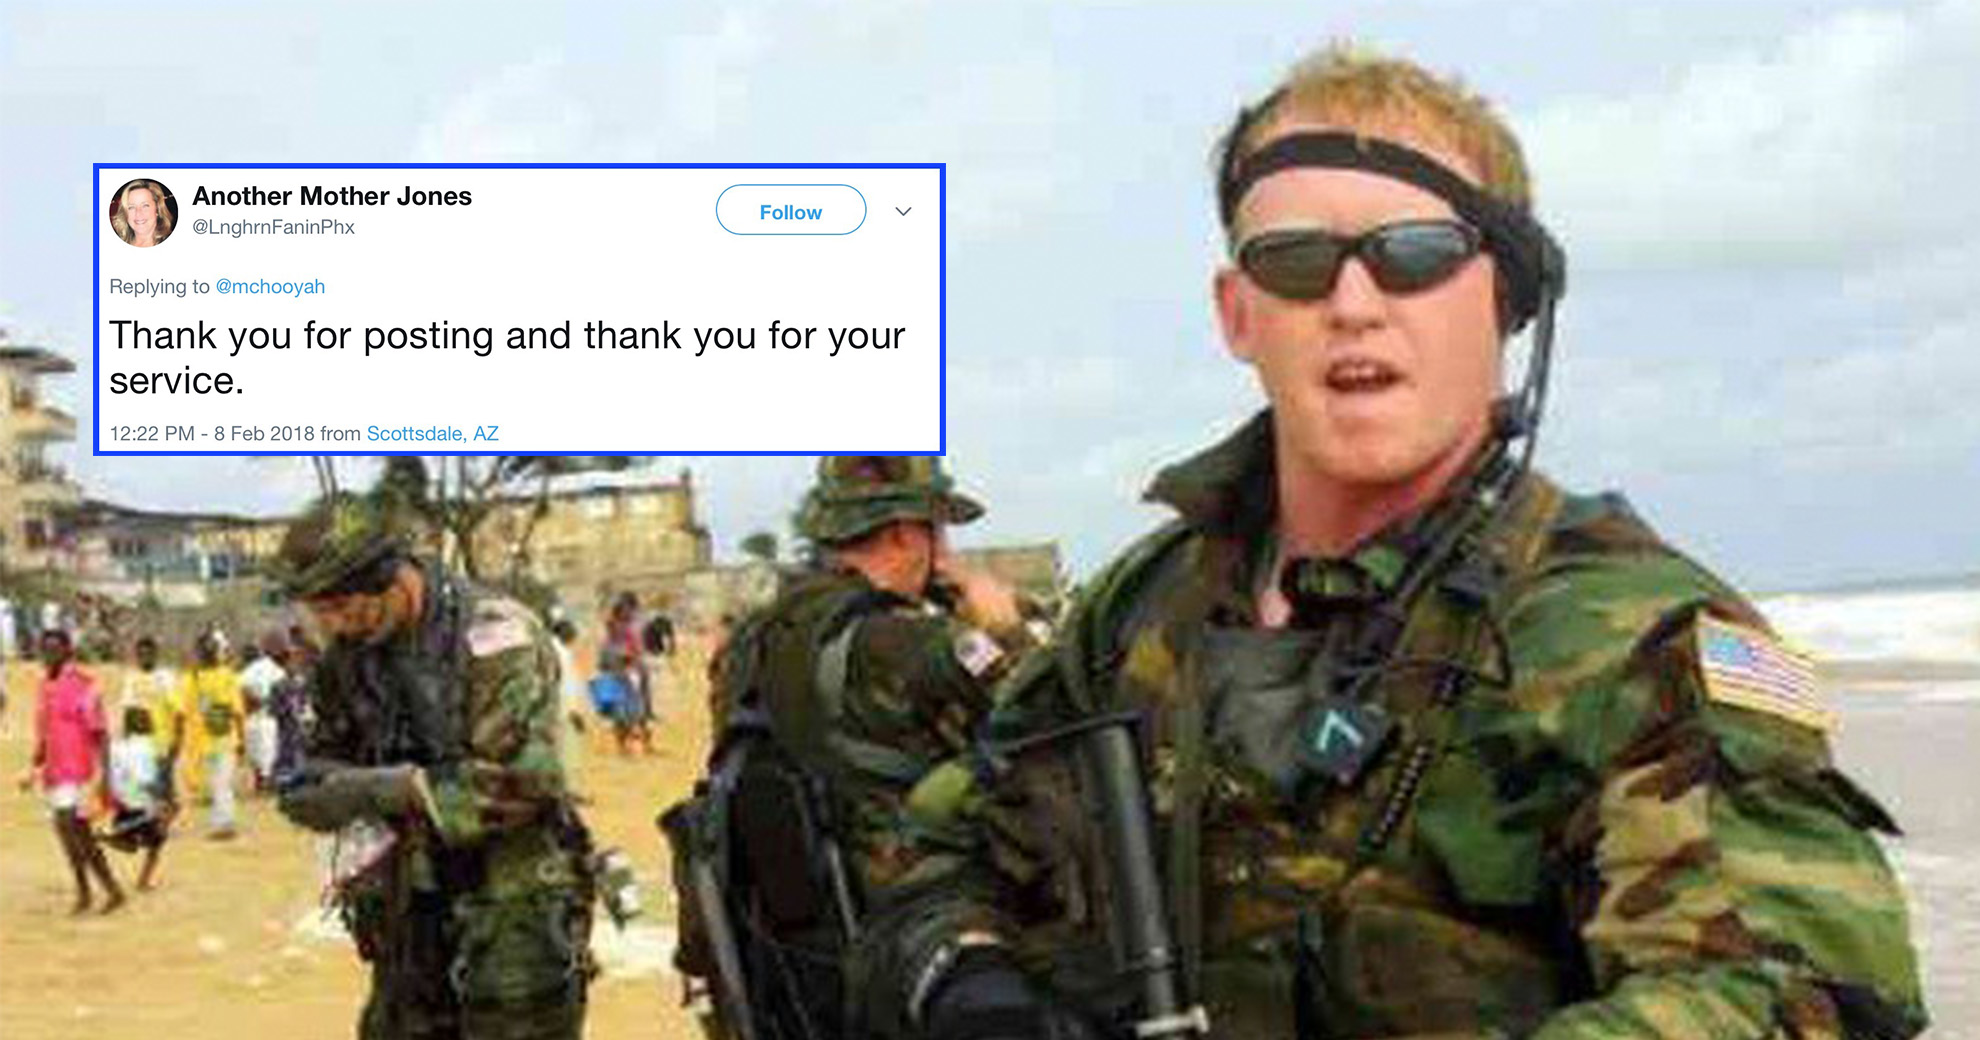 The Navy SEAL Who Killed Bin Laden Just Responded To Trump's Military Parade Idea